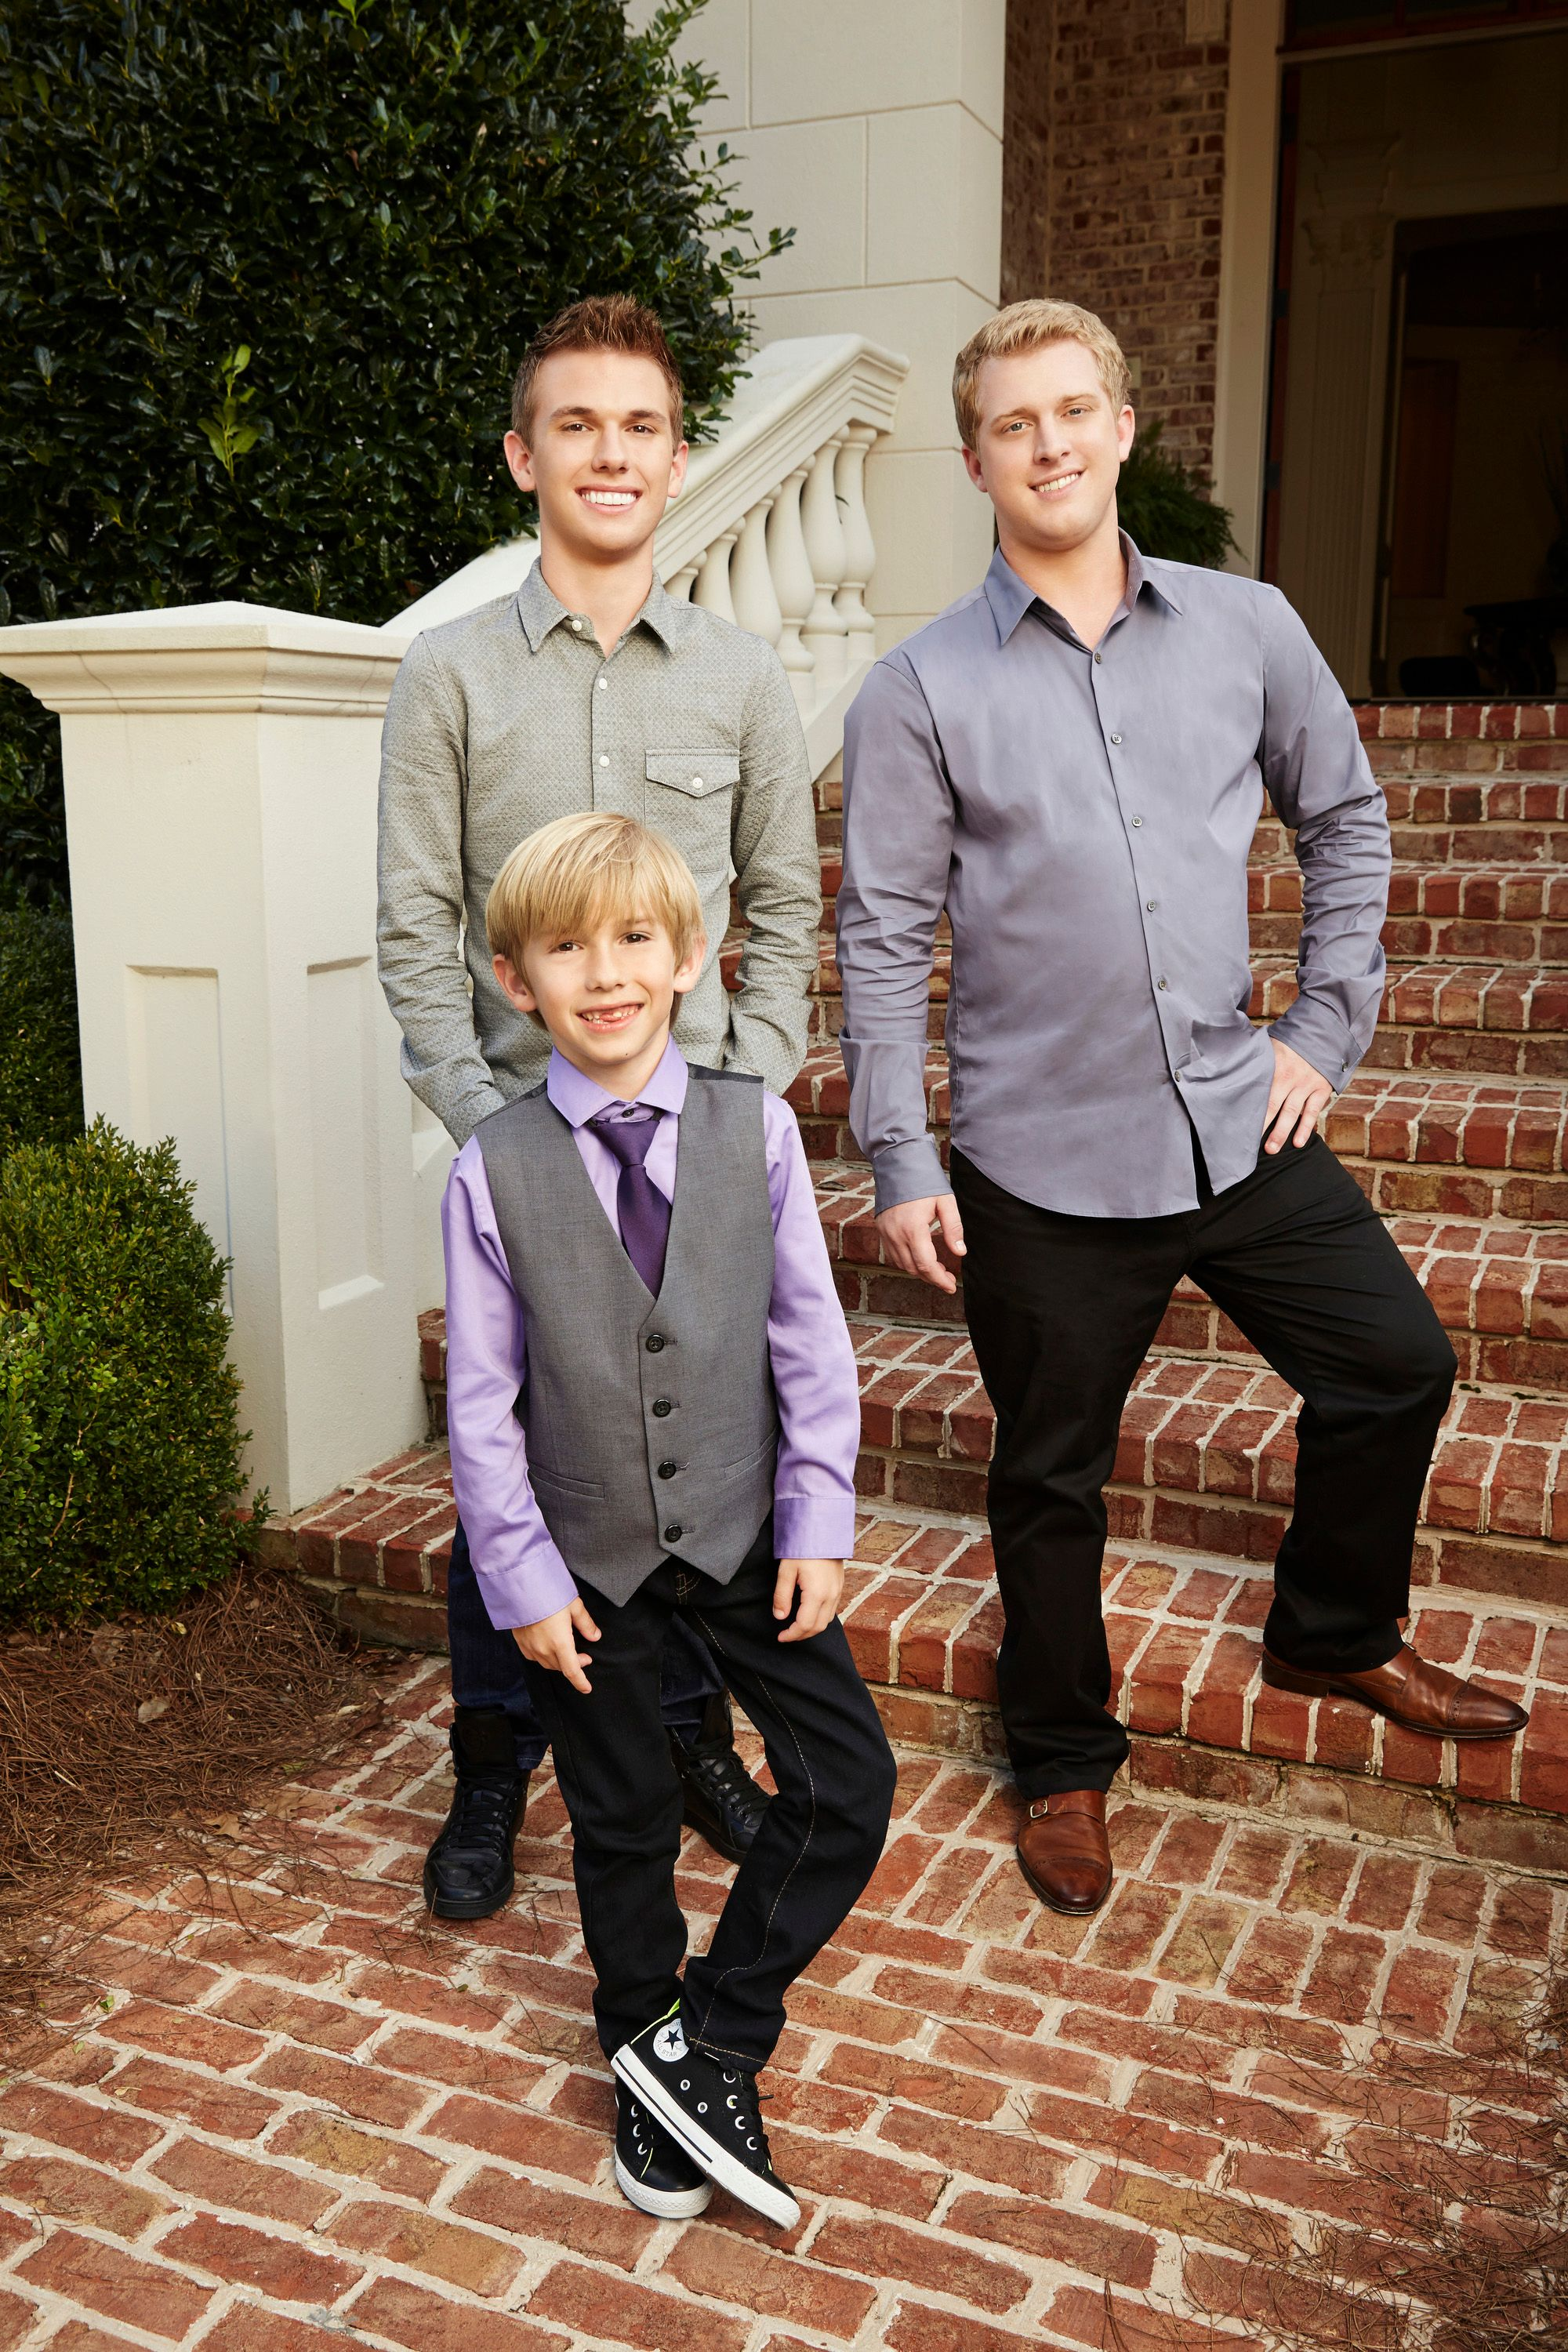 """Grayson, Chase, and Kyle Chrisley on season 1 of """"Chrisley Knows Best"""" on October 02, 2013 